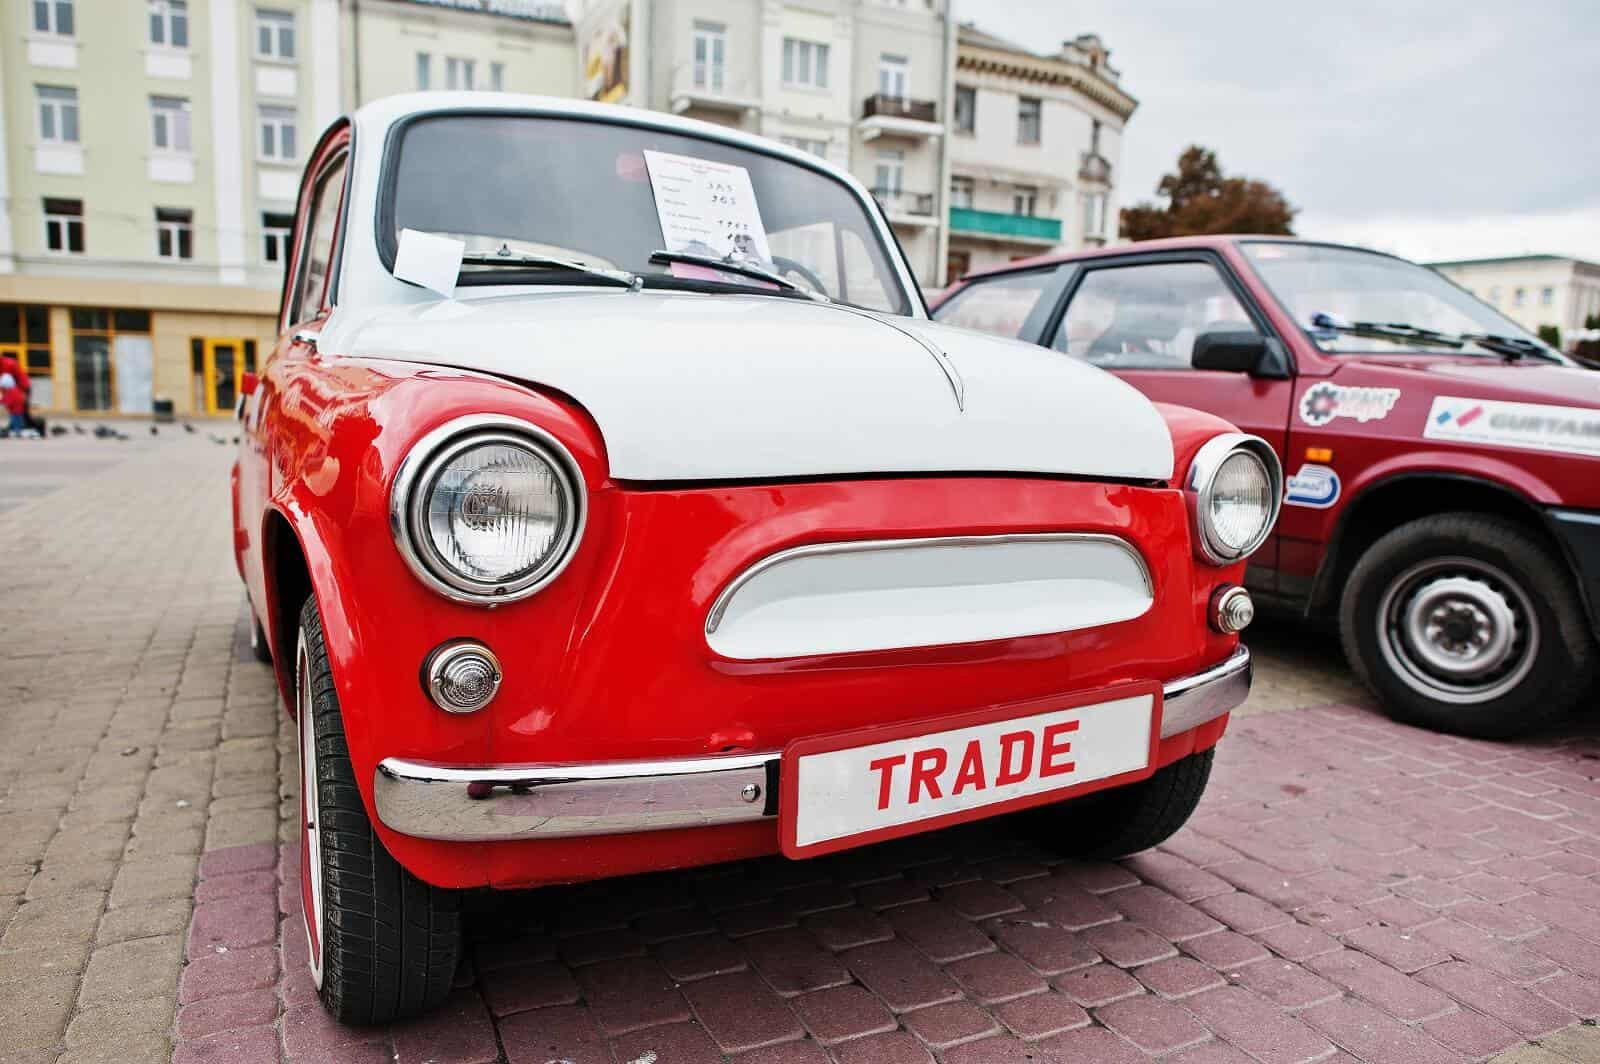 Motor Traders And Trade Plates Faqs Quotesearcher